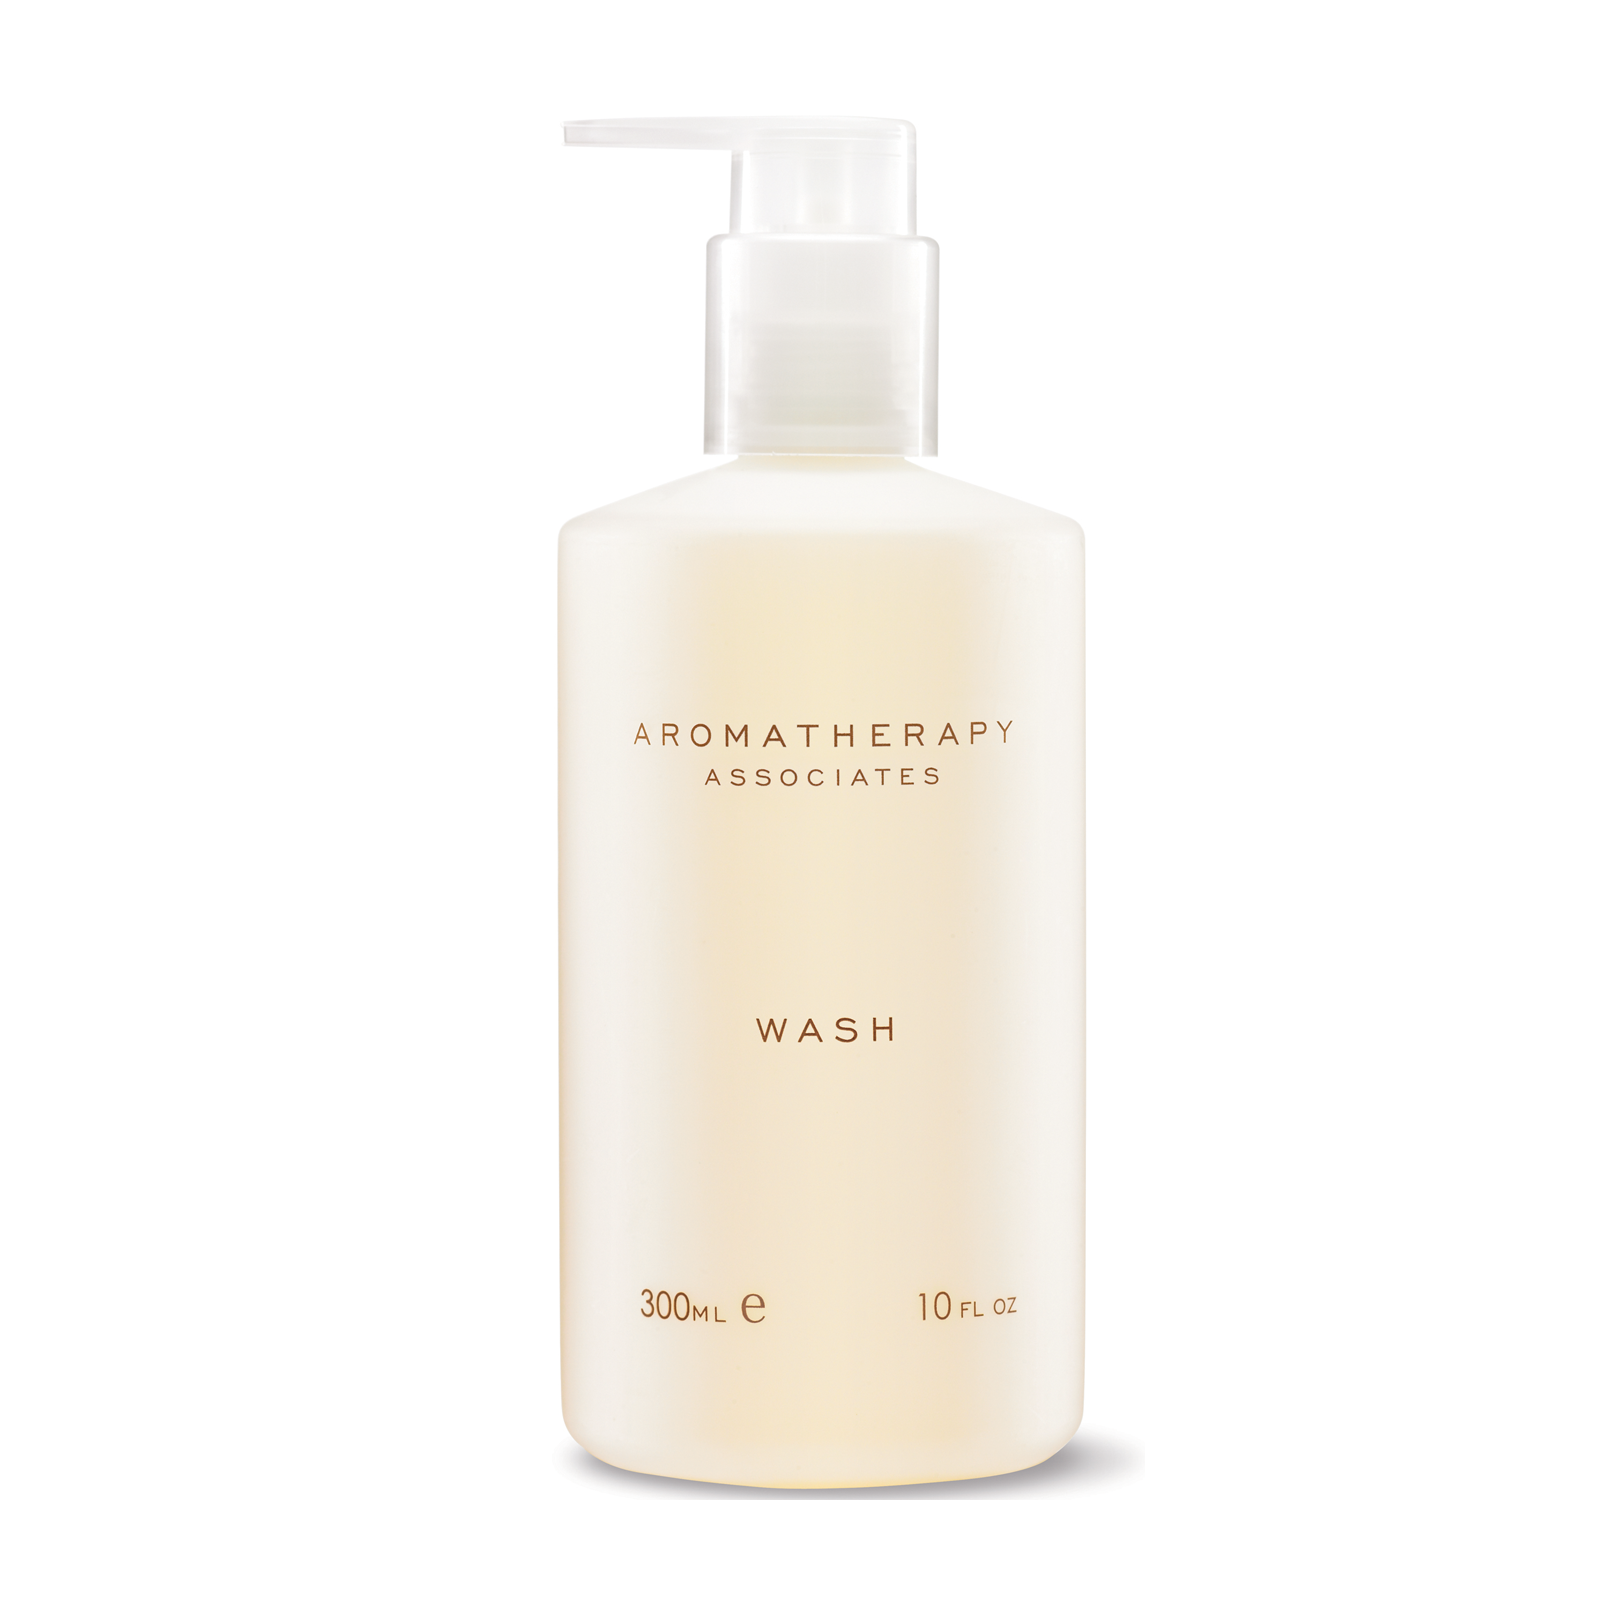 Aromatherapy Associates Wash 300ml